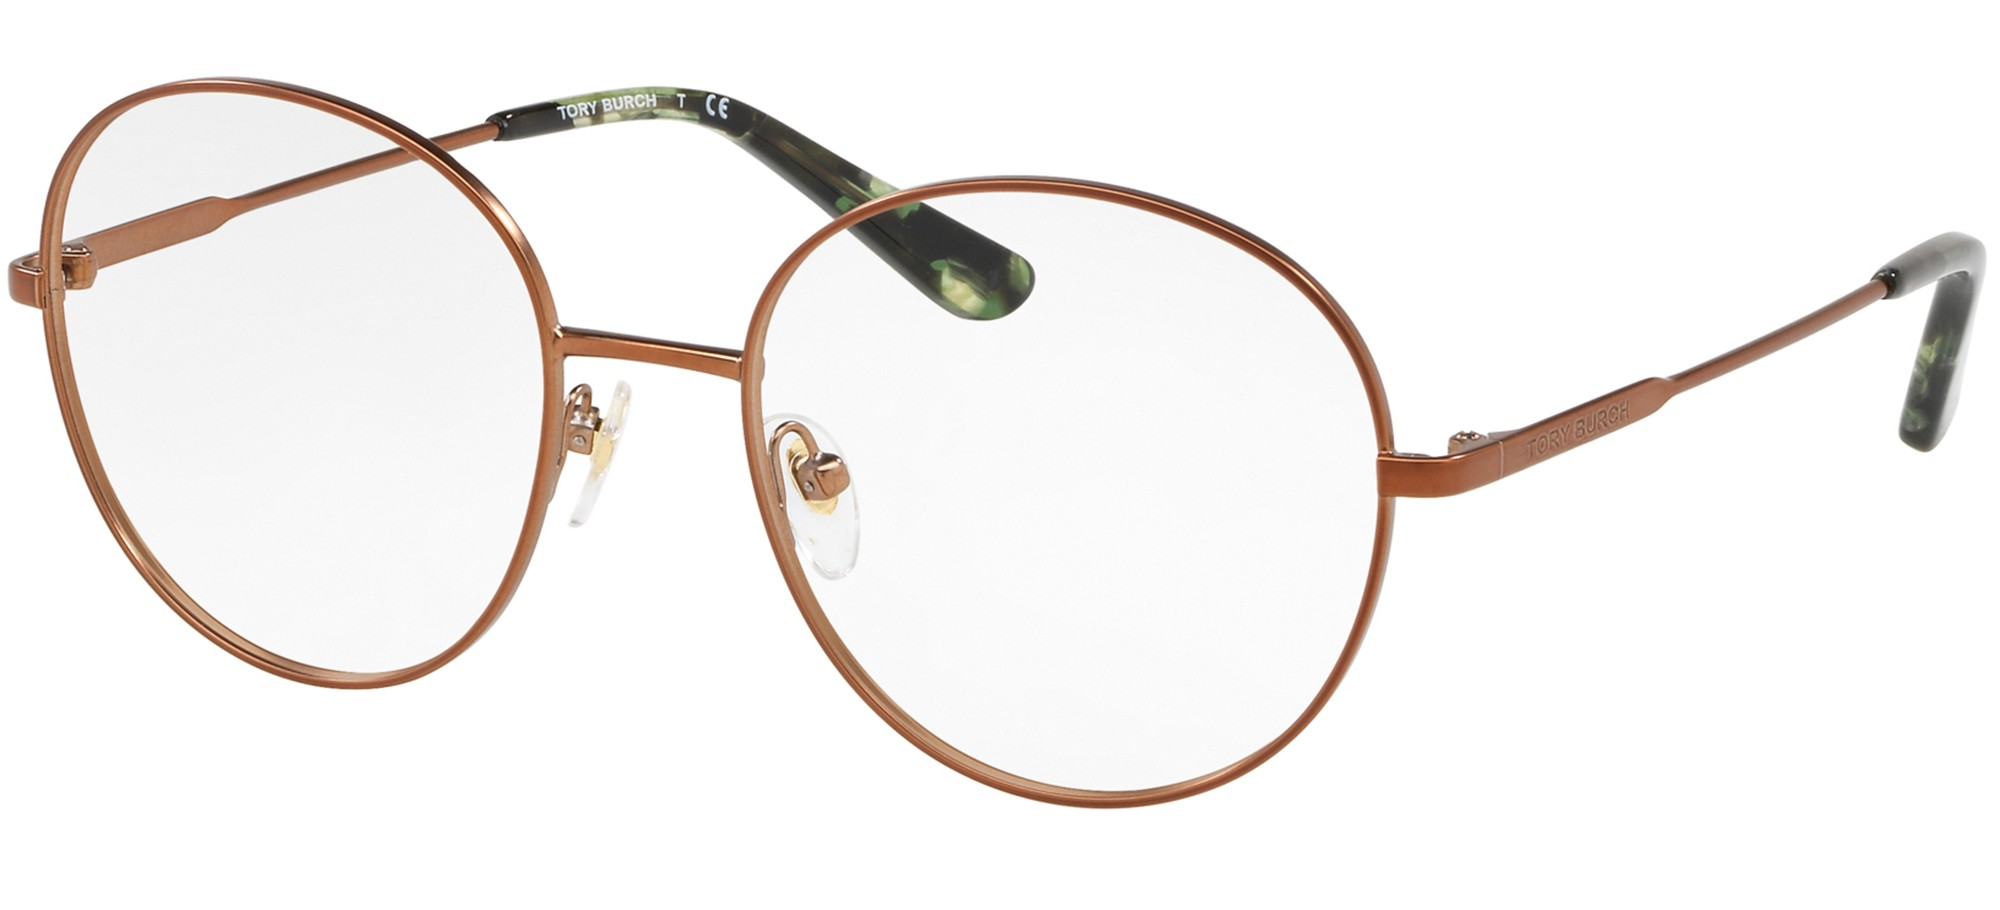 Tory Burch eyeglasses TY 1057